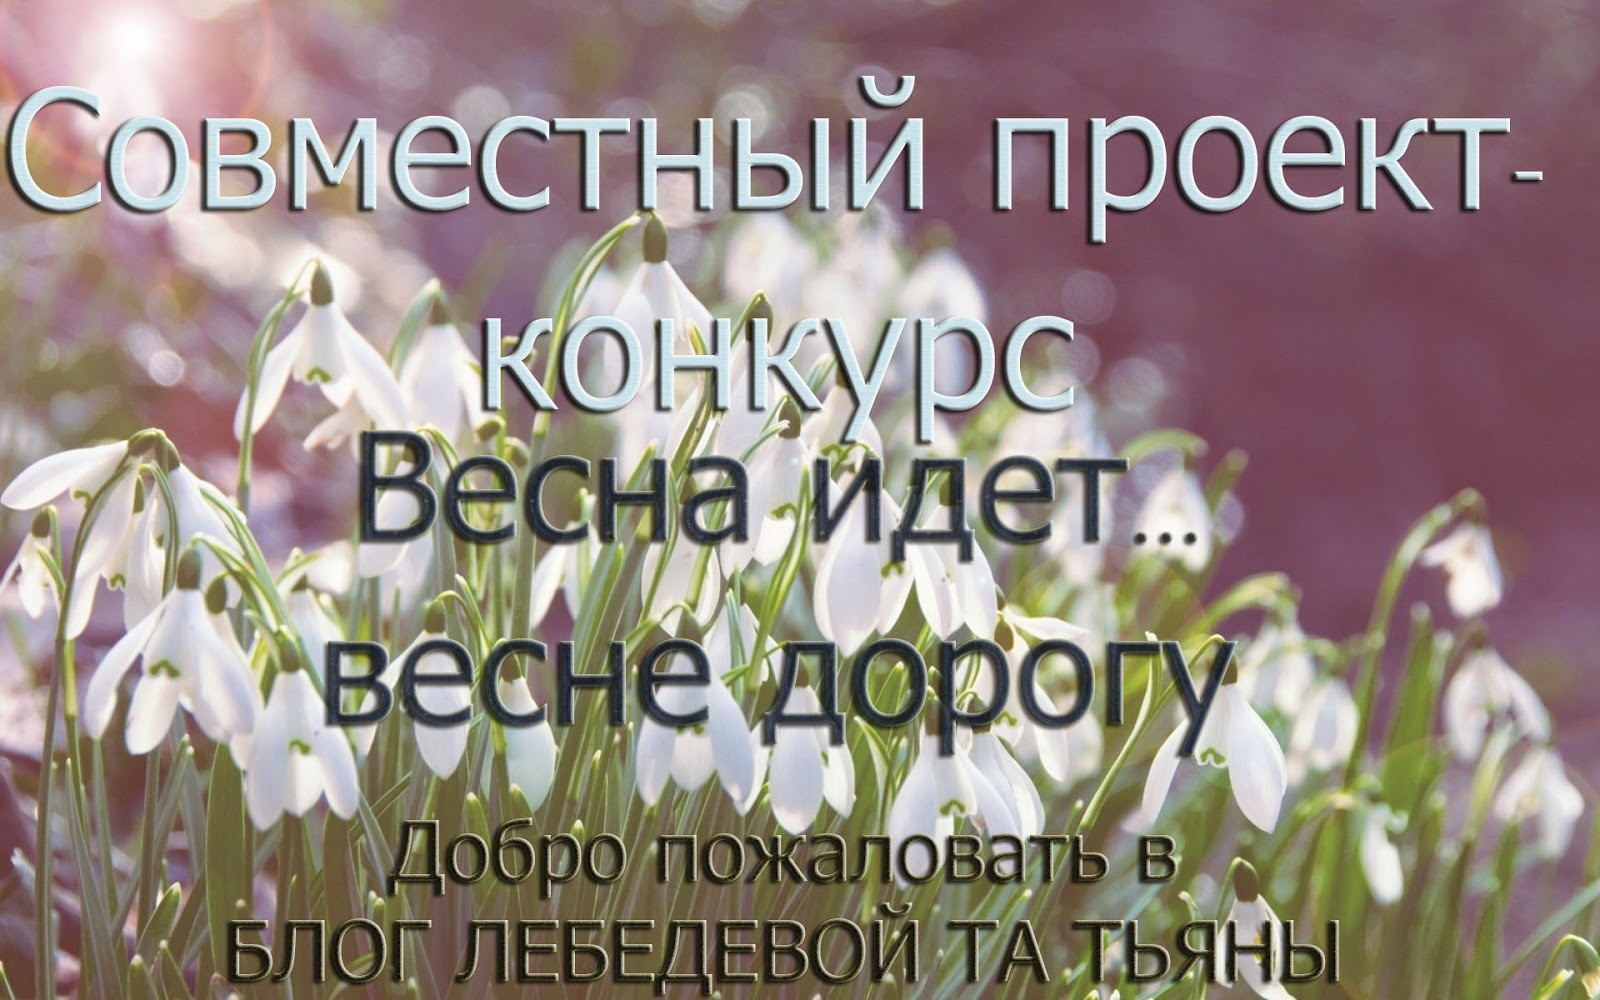 http://www.i-missisleta.blogspot.ru/2015/03/blog-post_5.html